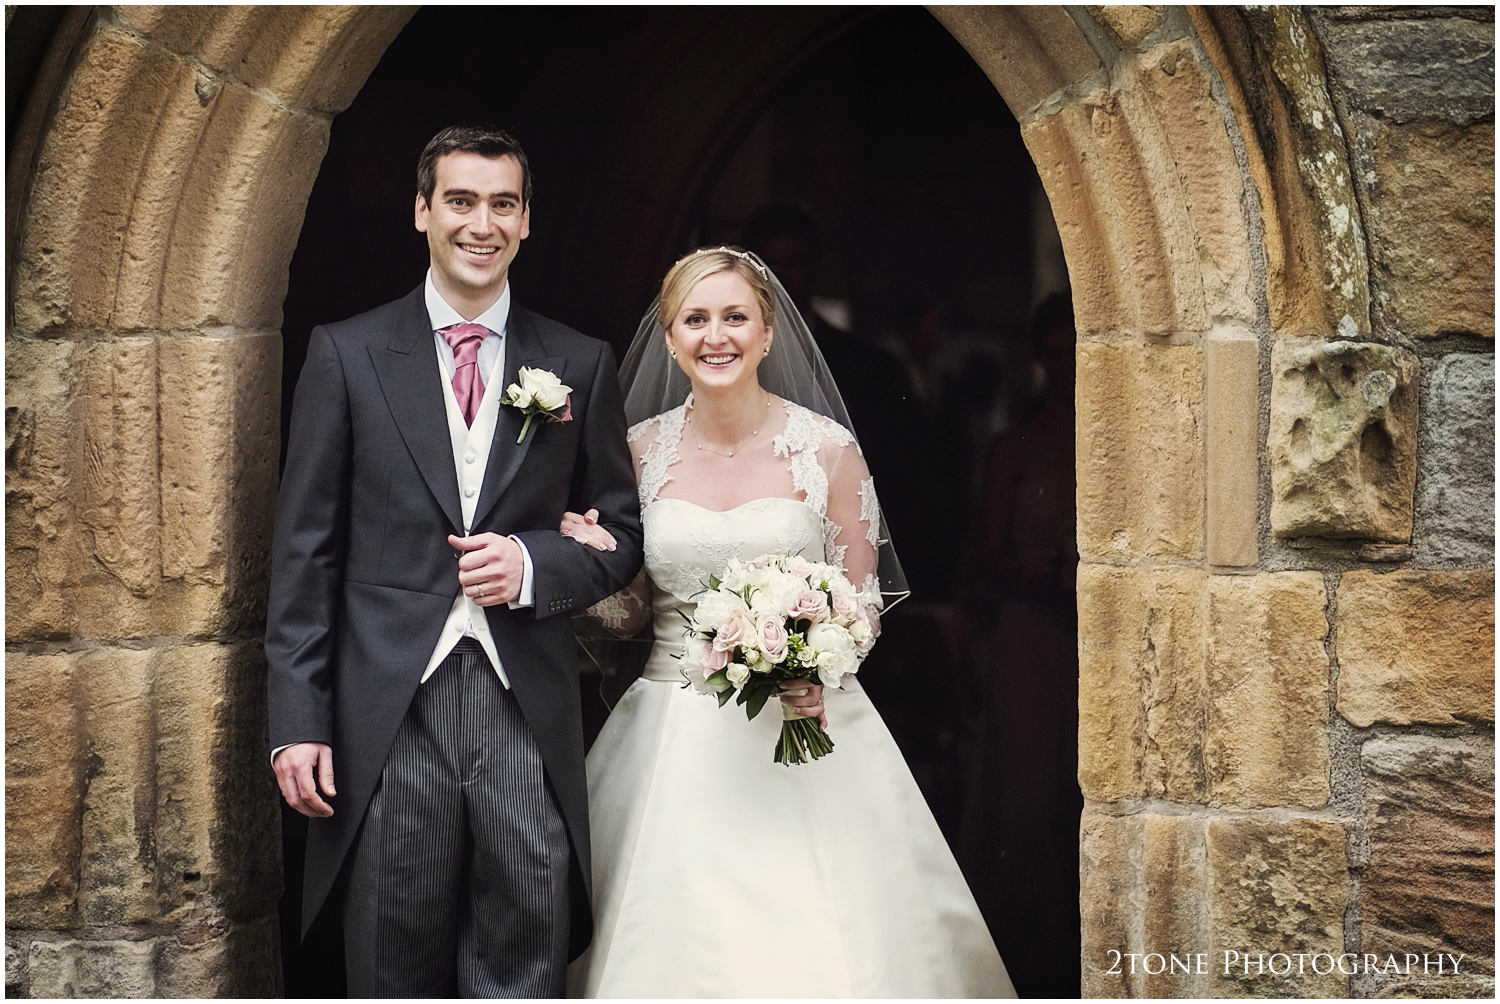 Our very happy newlyweds leave the church andenjoy a brief break in the rain with their guests.